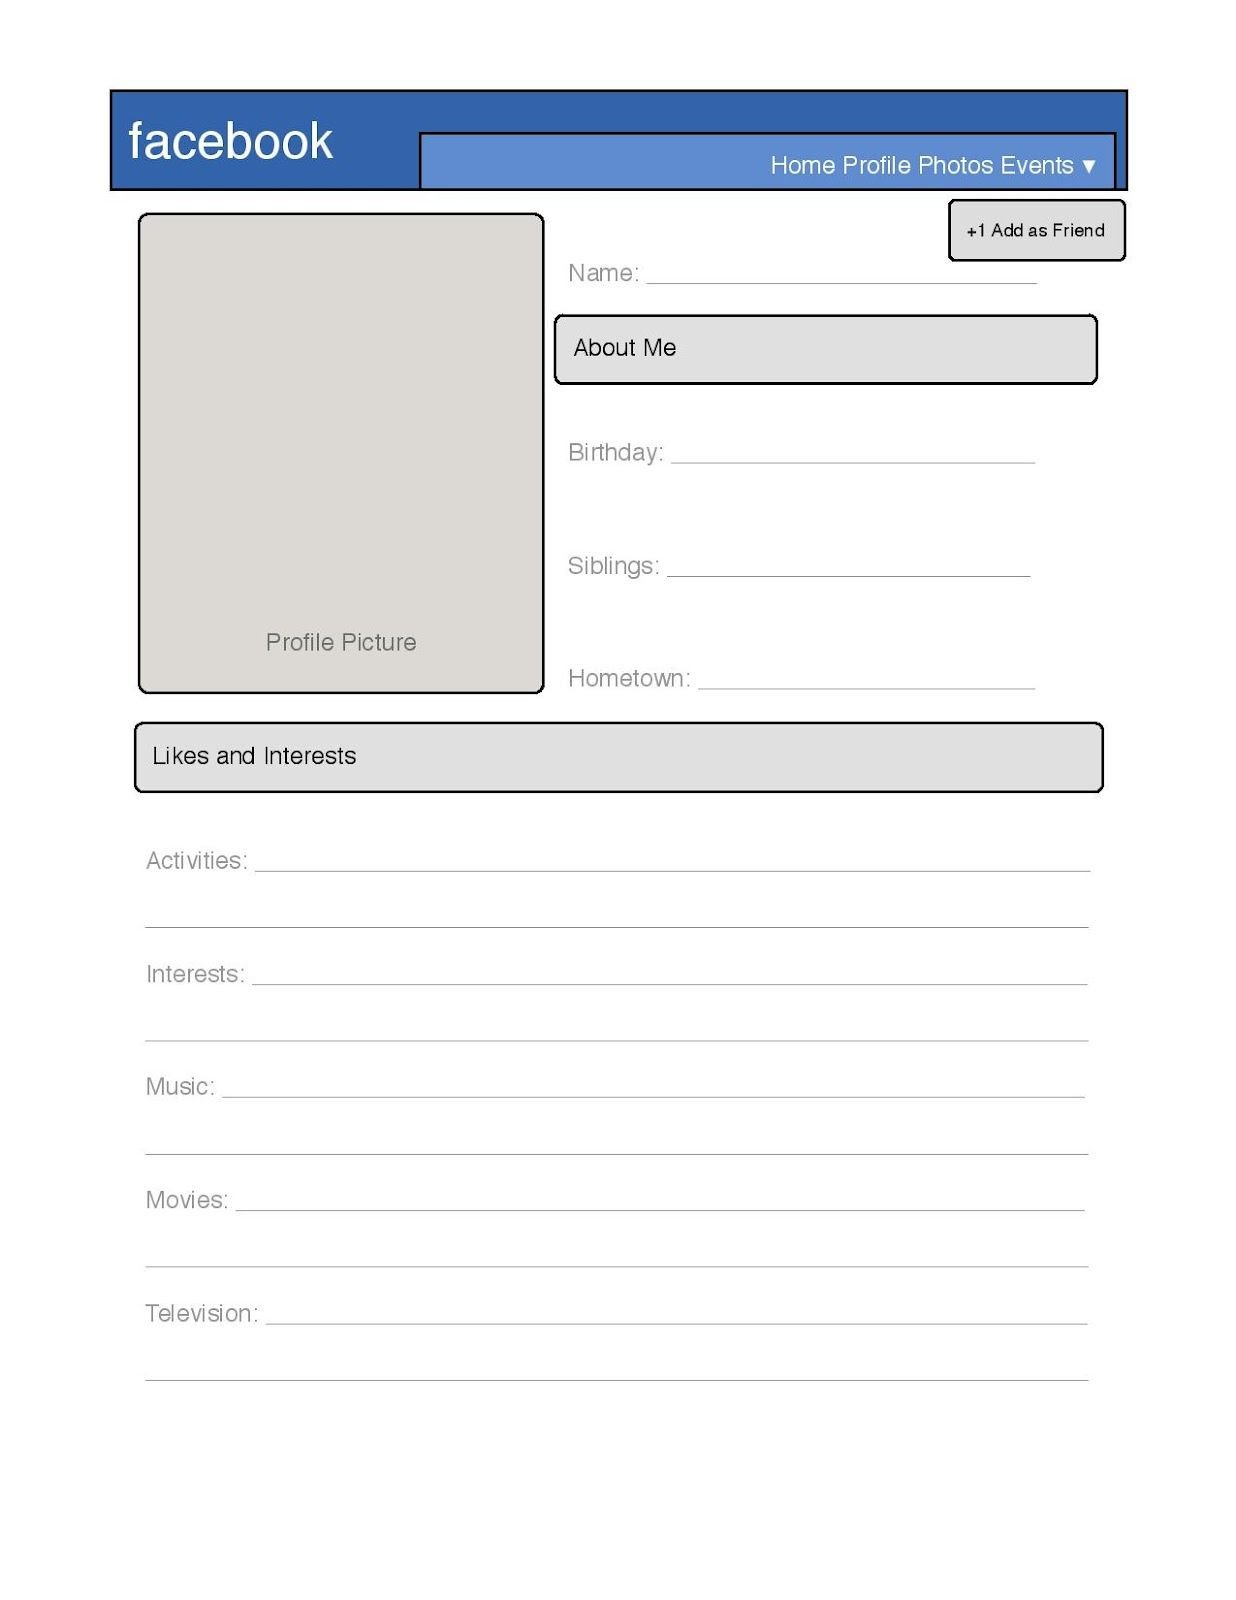 Facebook Profile Page Template Simple Profile Template Great for Introduction